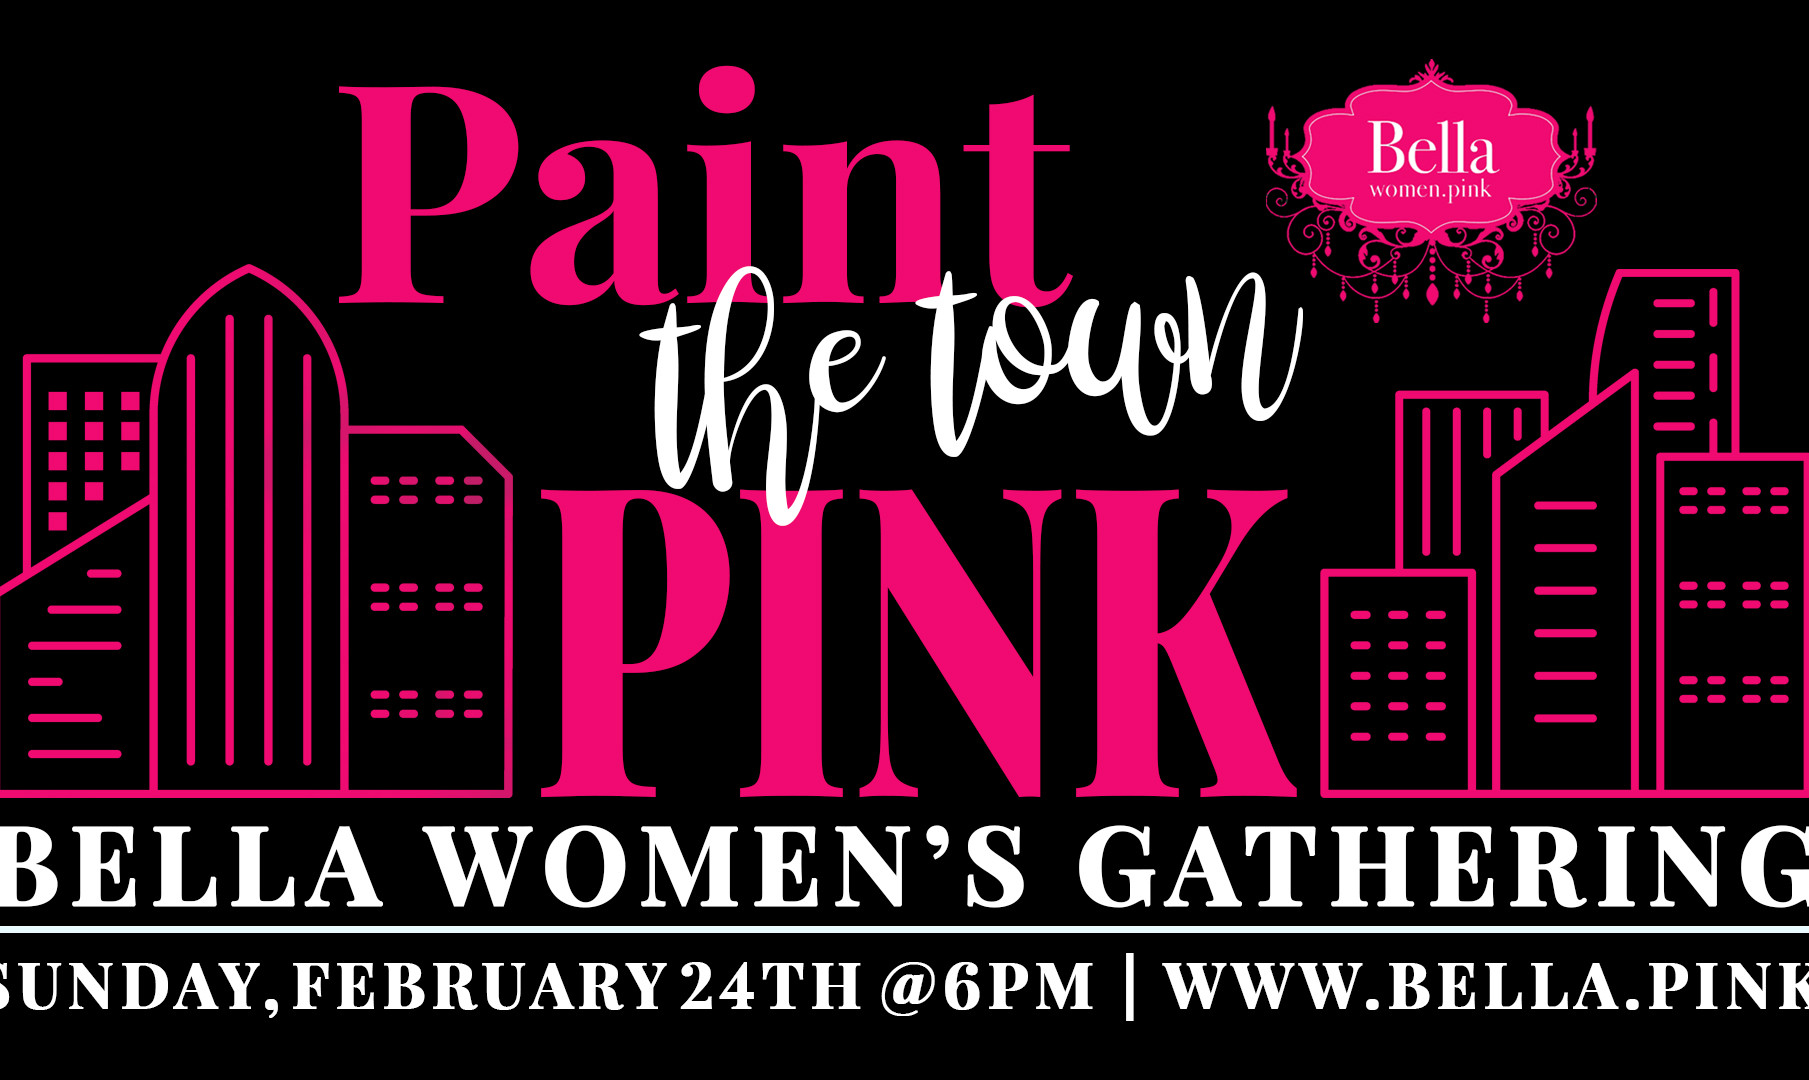 Bella paint the town pink february 2019